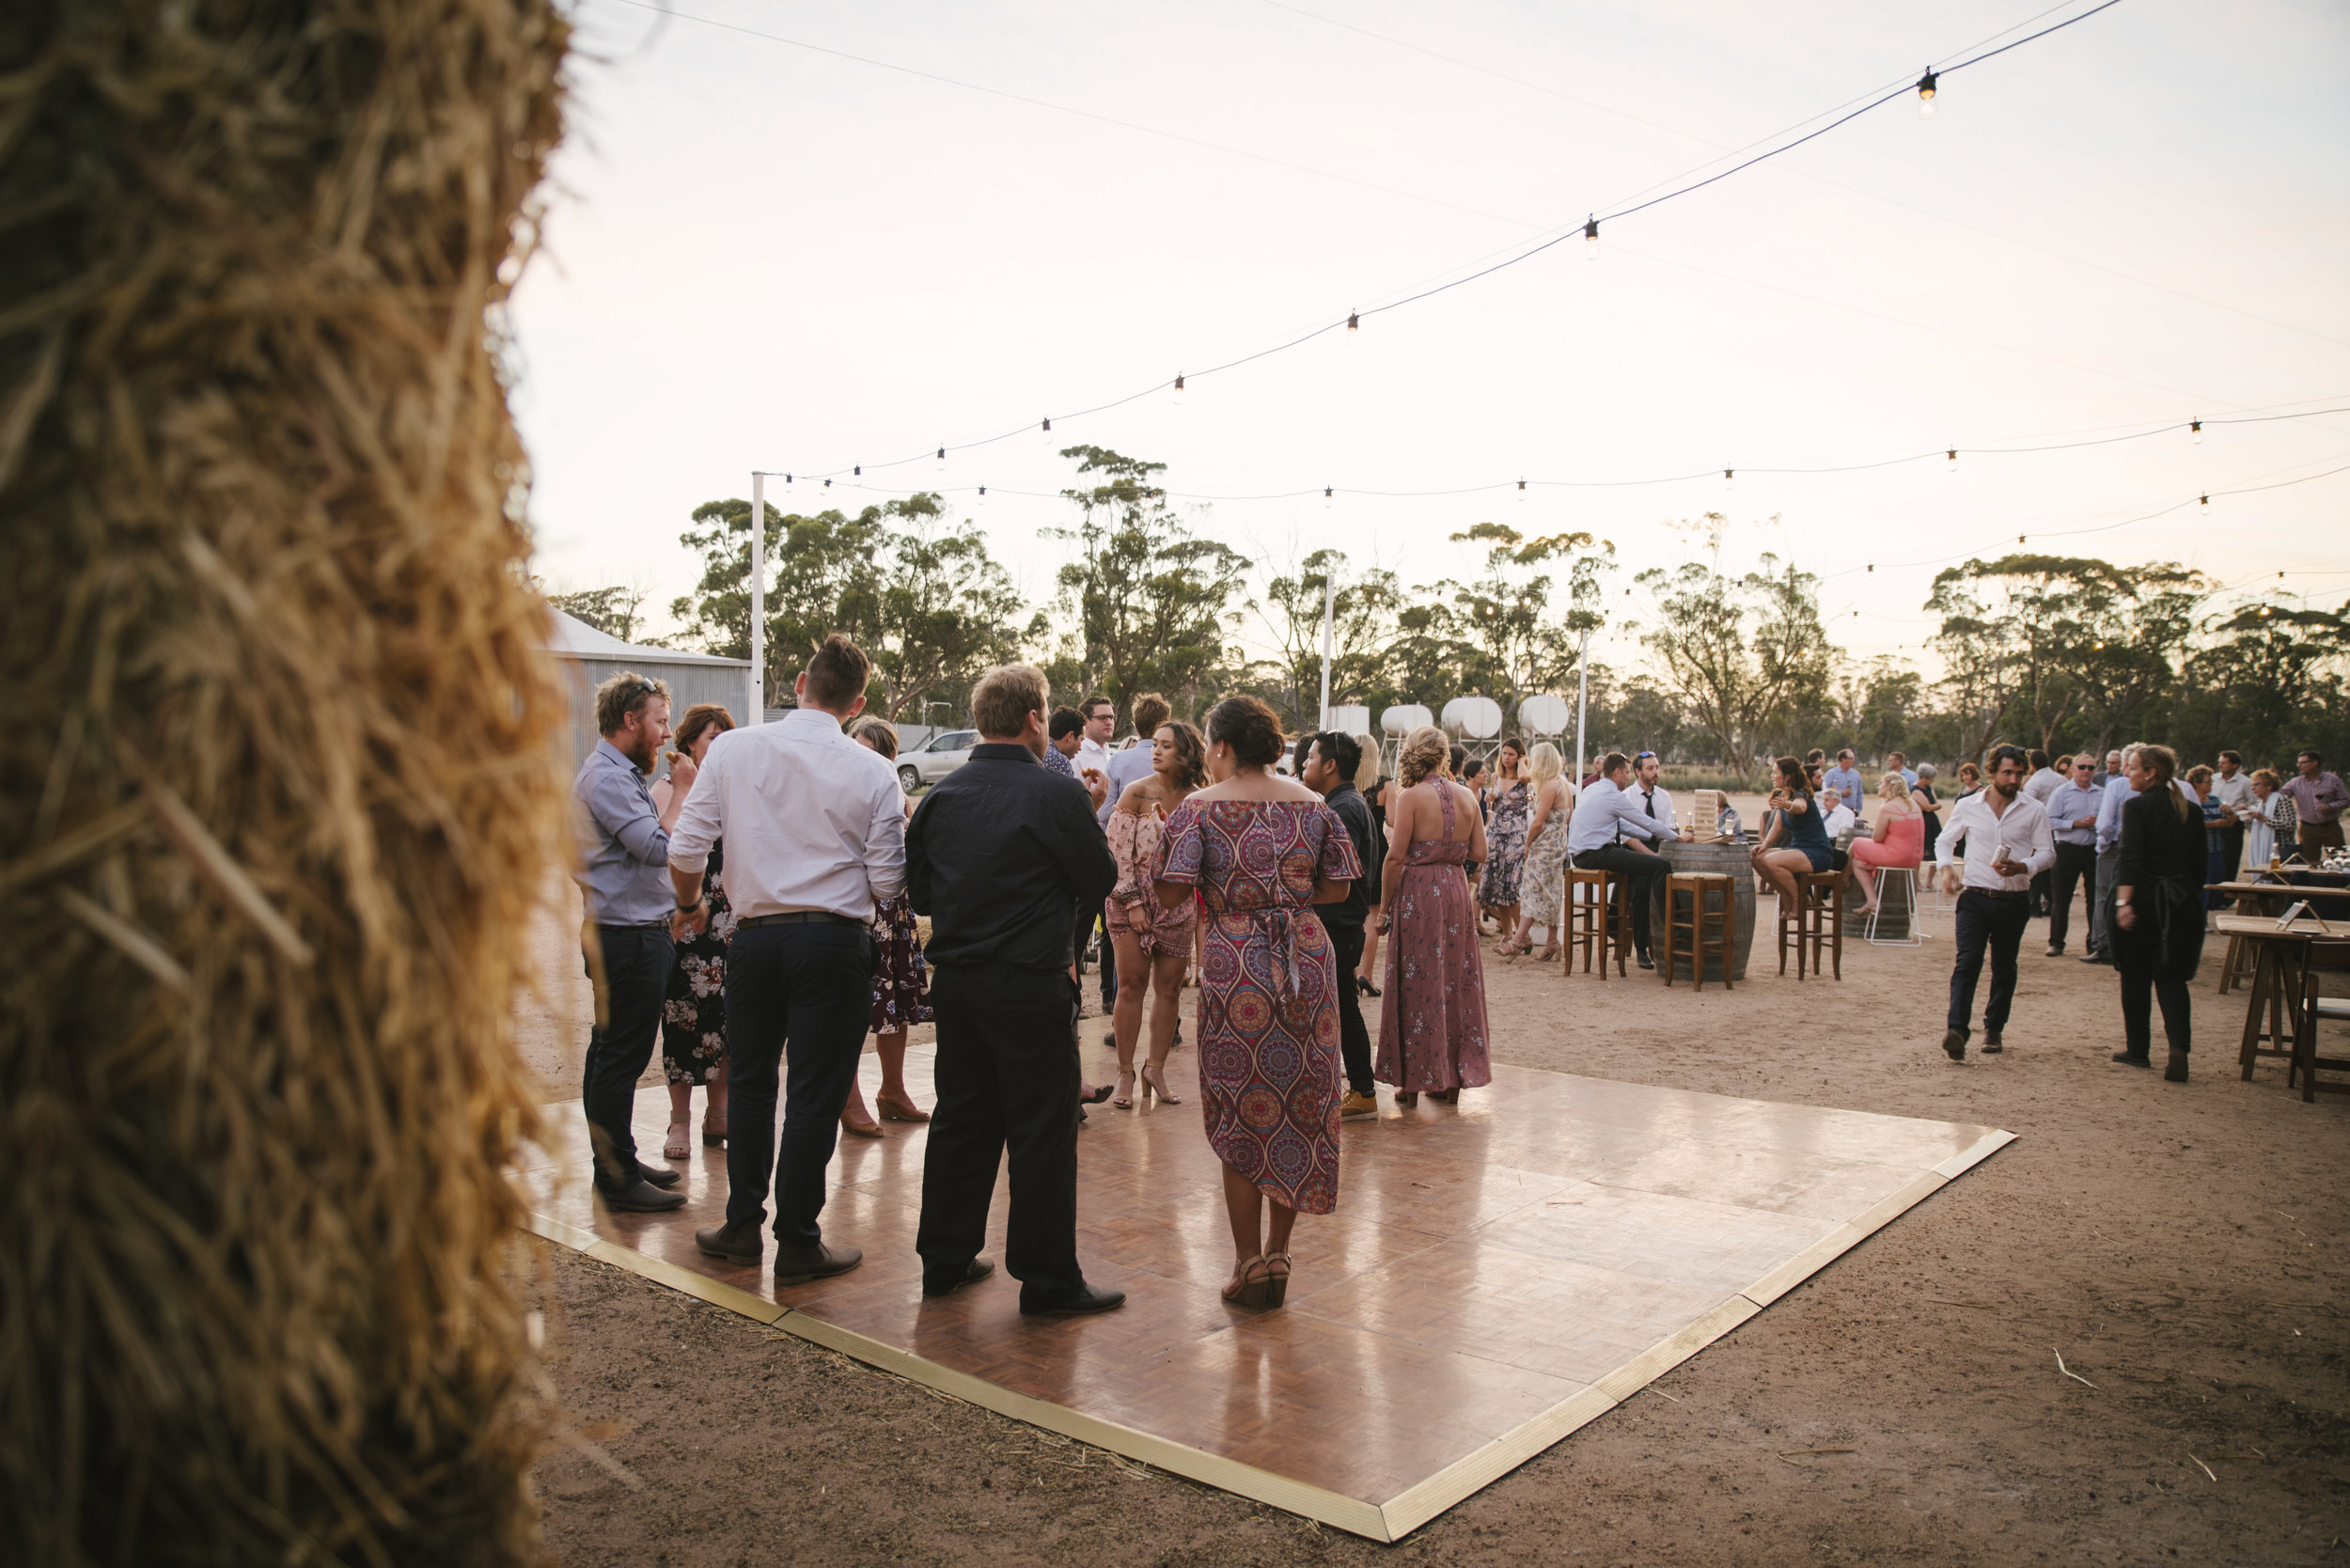 Wheatbelt Merredin Rustic Rural Farm Wedding (69).jpg